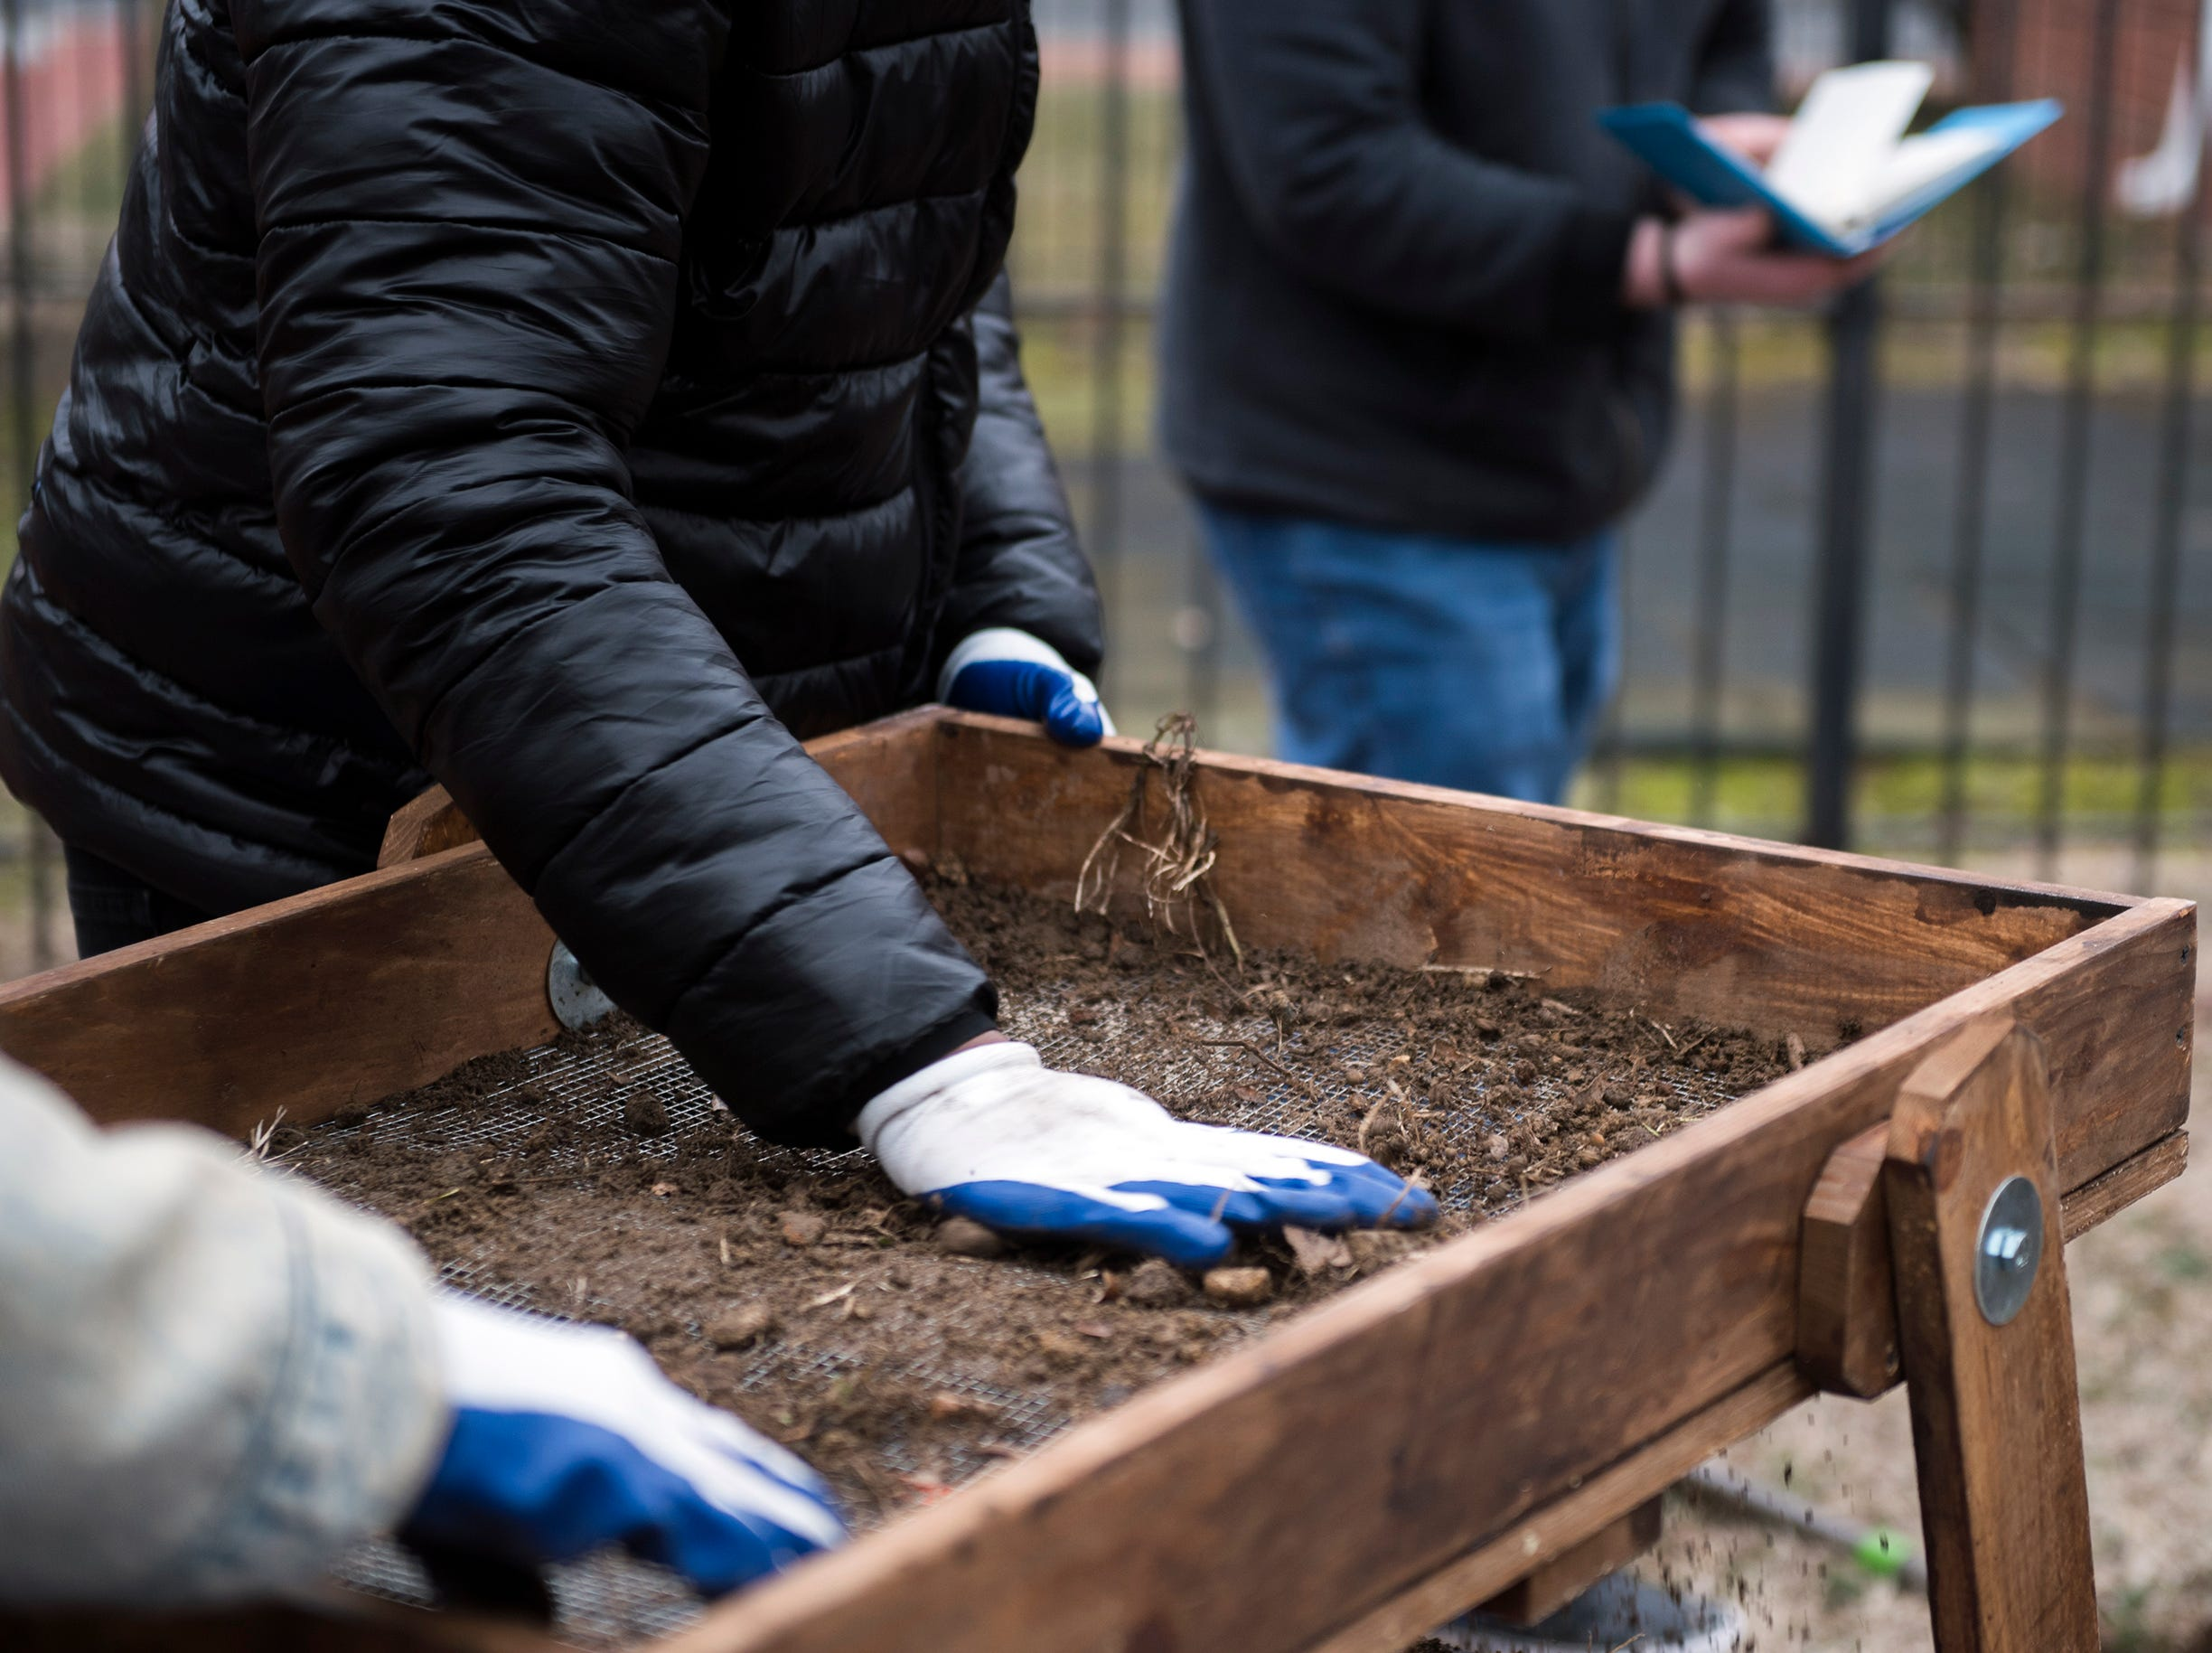 Students sift through soil Thursday, Feb. 7, 2019 behind the Rutgers-Camden Office of Civic Engagement in Camden, N.J.